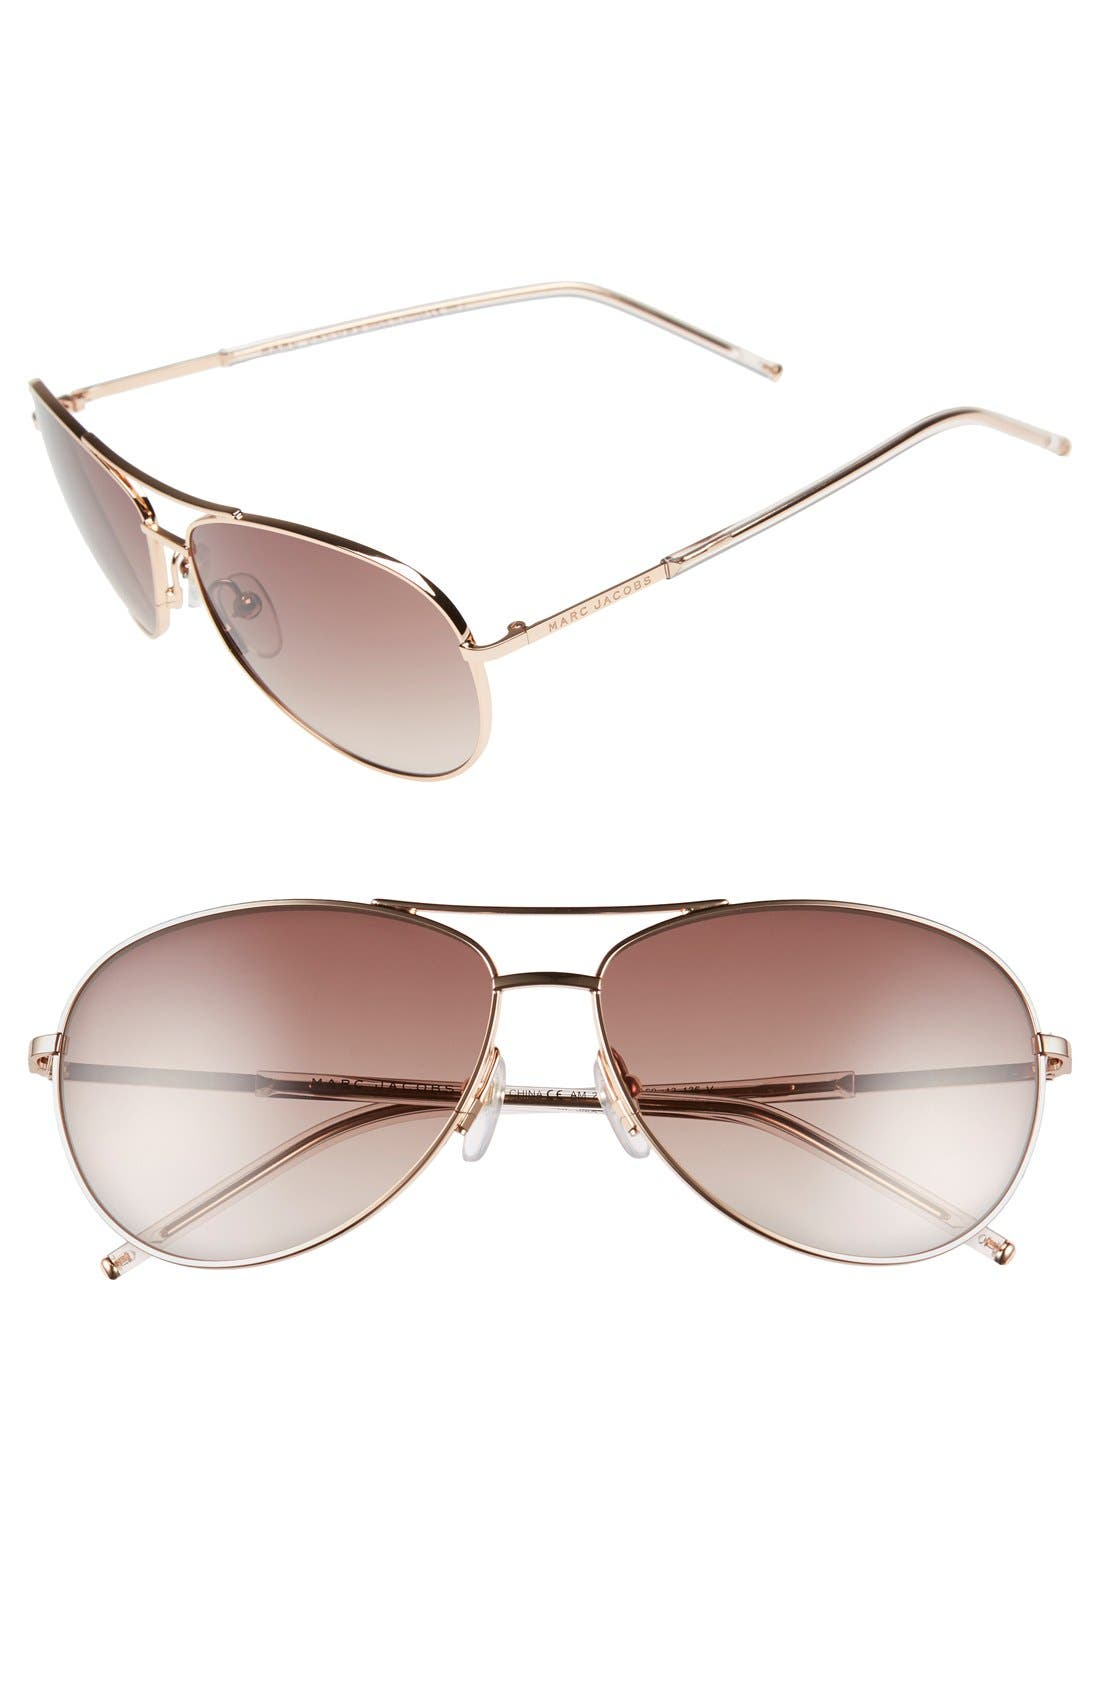 59mm Aviator Sunglasses,                             Main thumbnail 1, color,                             Gold Copper